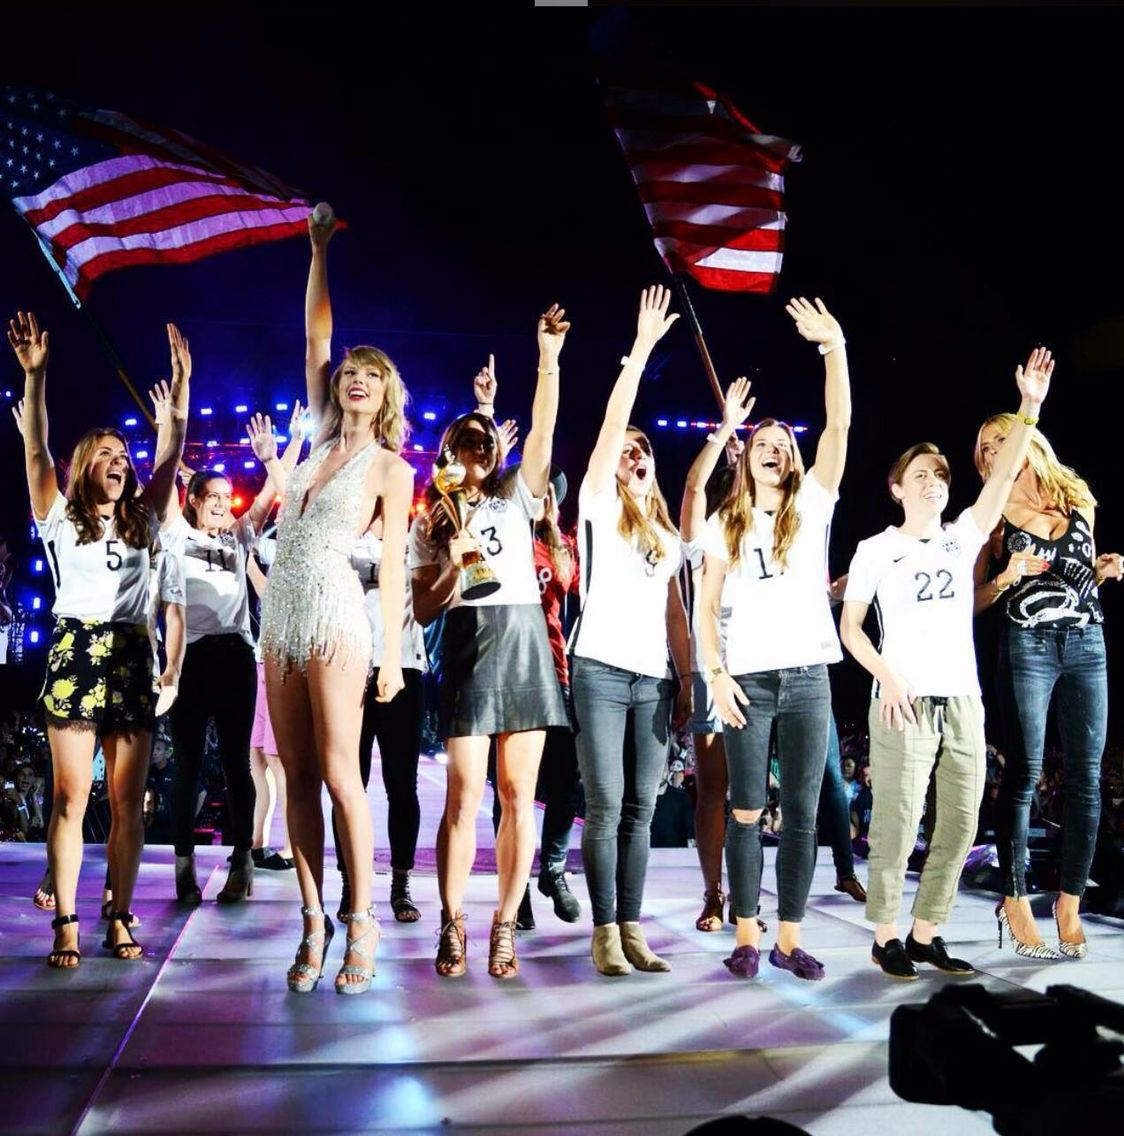 Got to welcome the U.S Women's Soccer Team home after their World Cup Victory-! LOVE THEM AND THEY ARE THE NICEST. #WorldTour1989 -Taylor Swift-